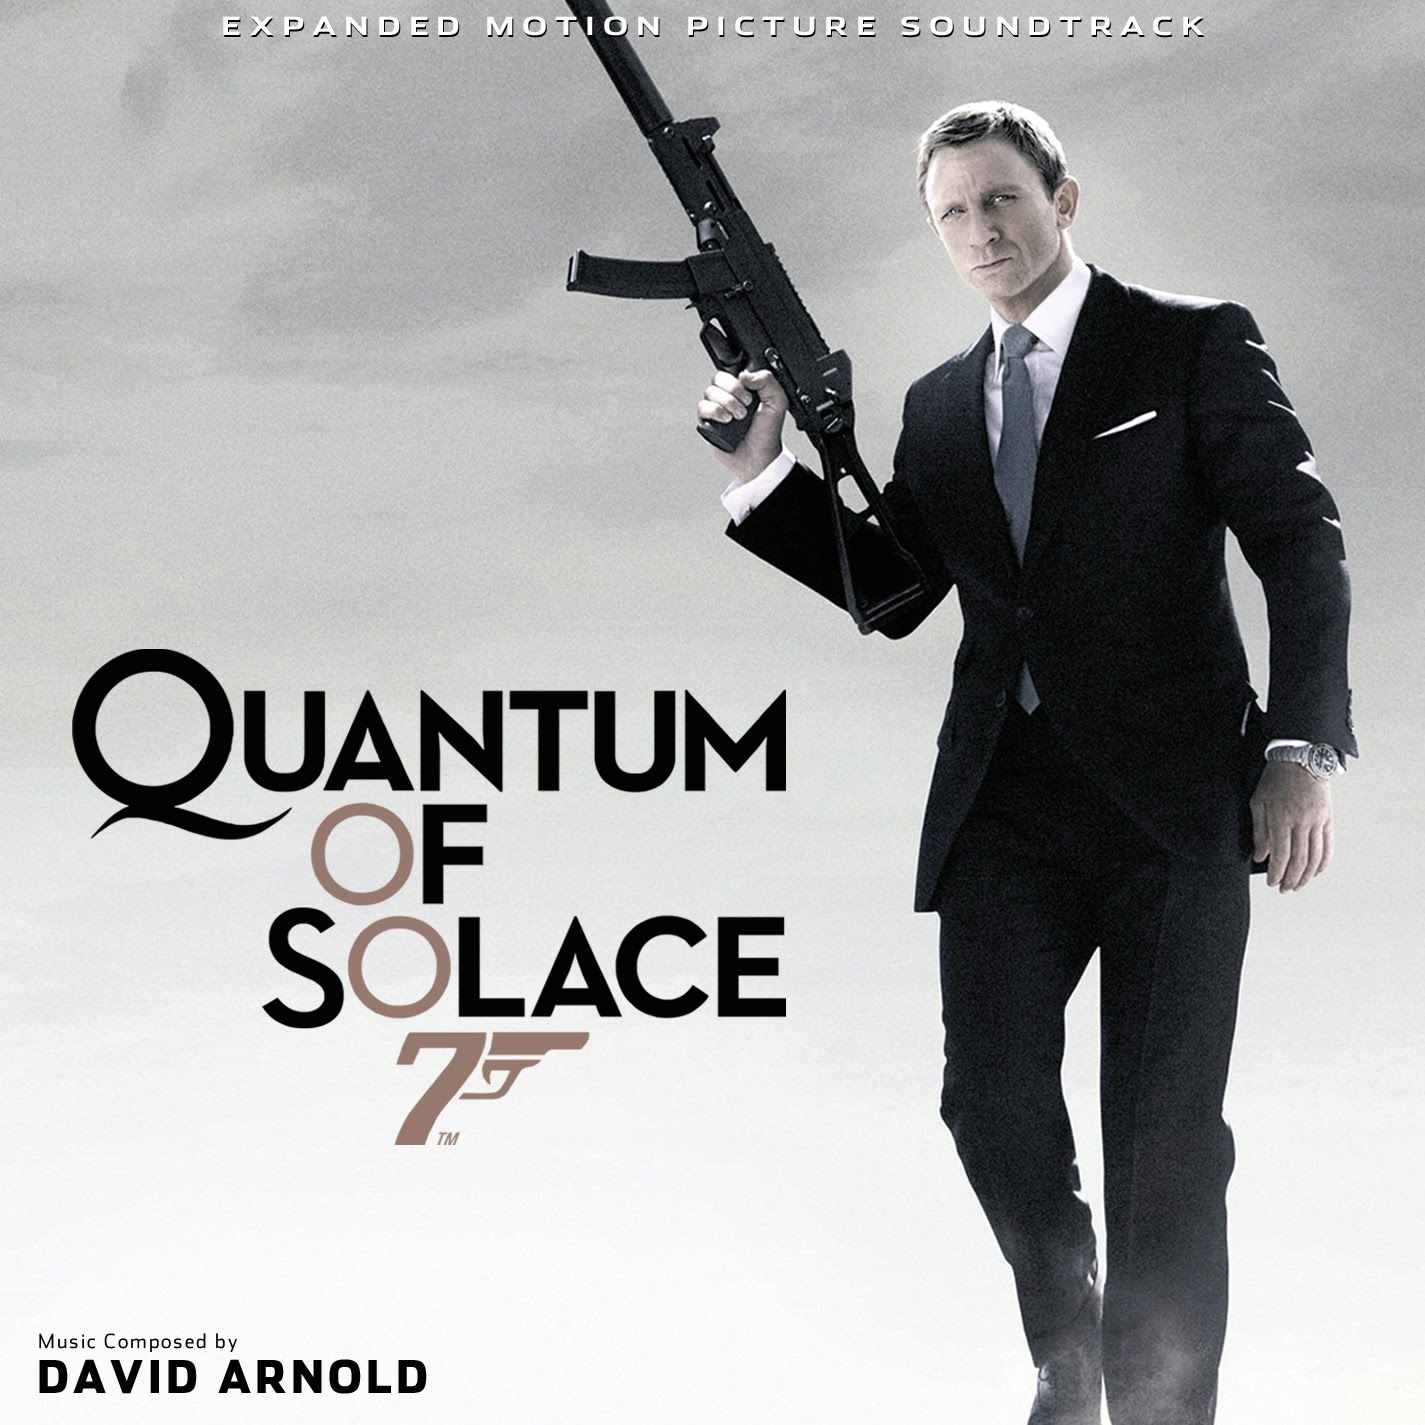 [Quantum+of+solace+(expanded)+-+Front.jpg]